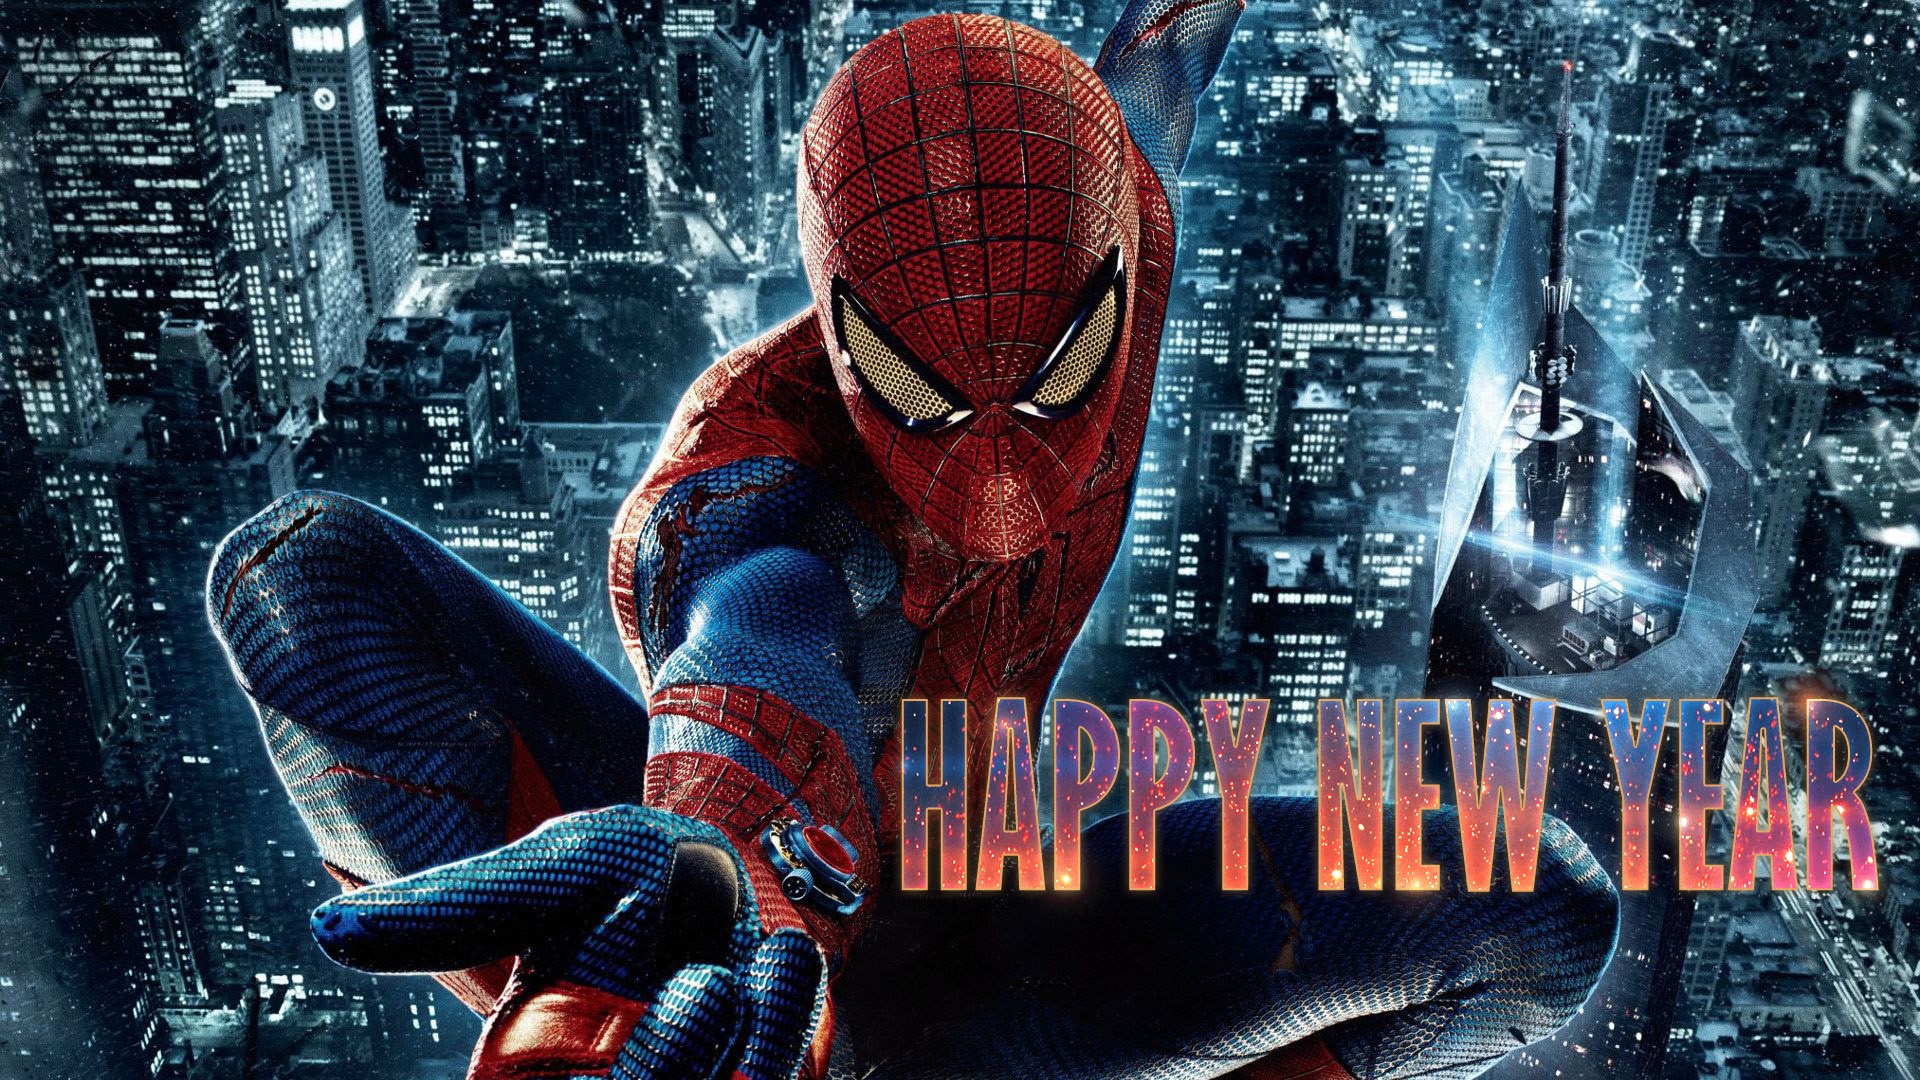 happy new year wishes super hero spiderman kids hd wallpaper